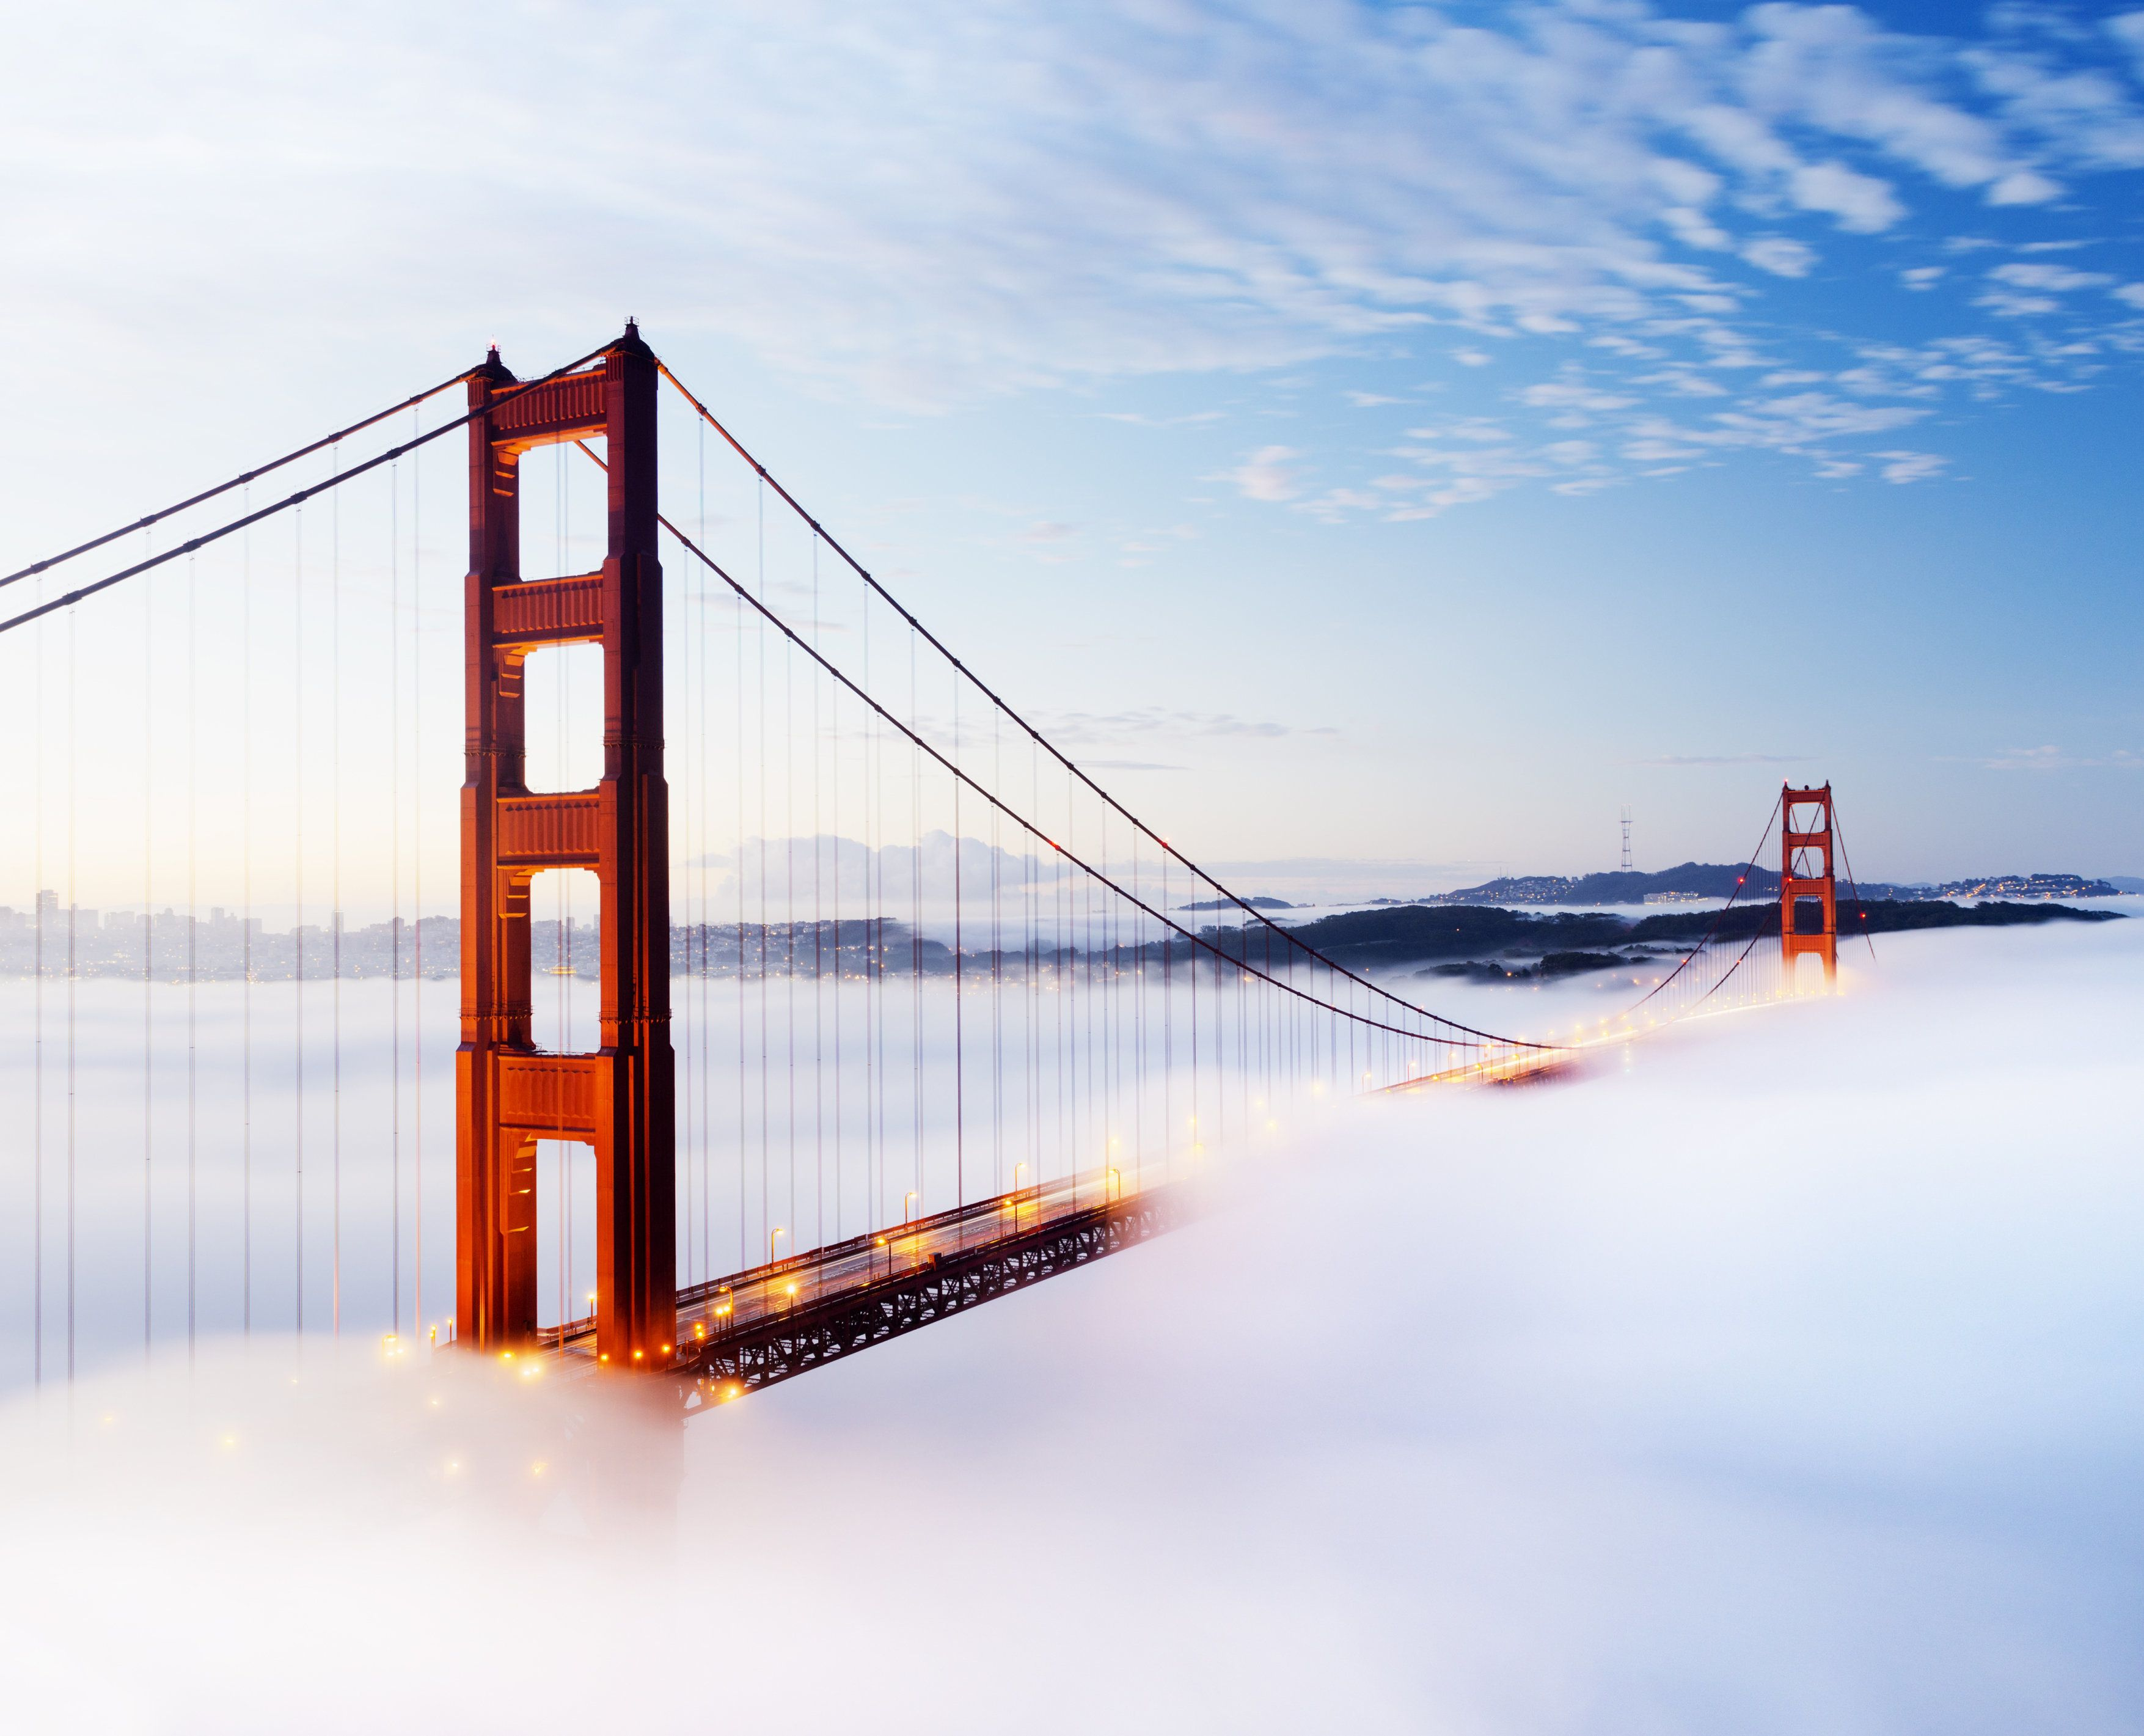 'The Golden Gate bridge in San Francisco surrounded by fog at twilight, USA.'